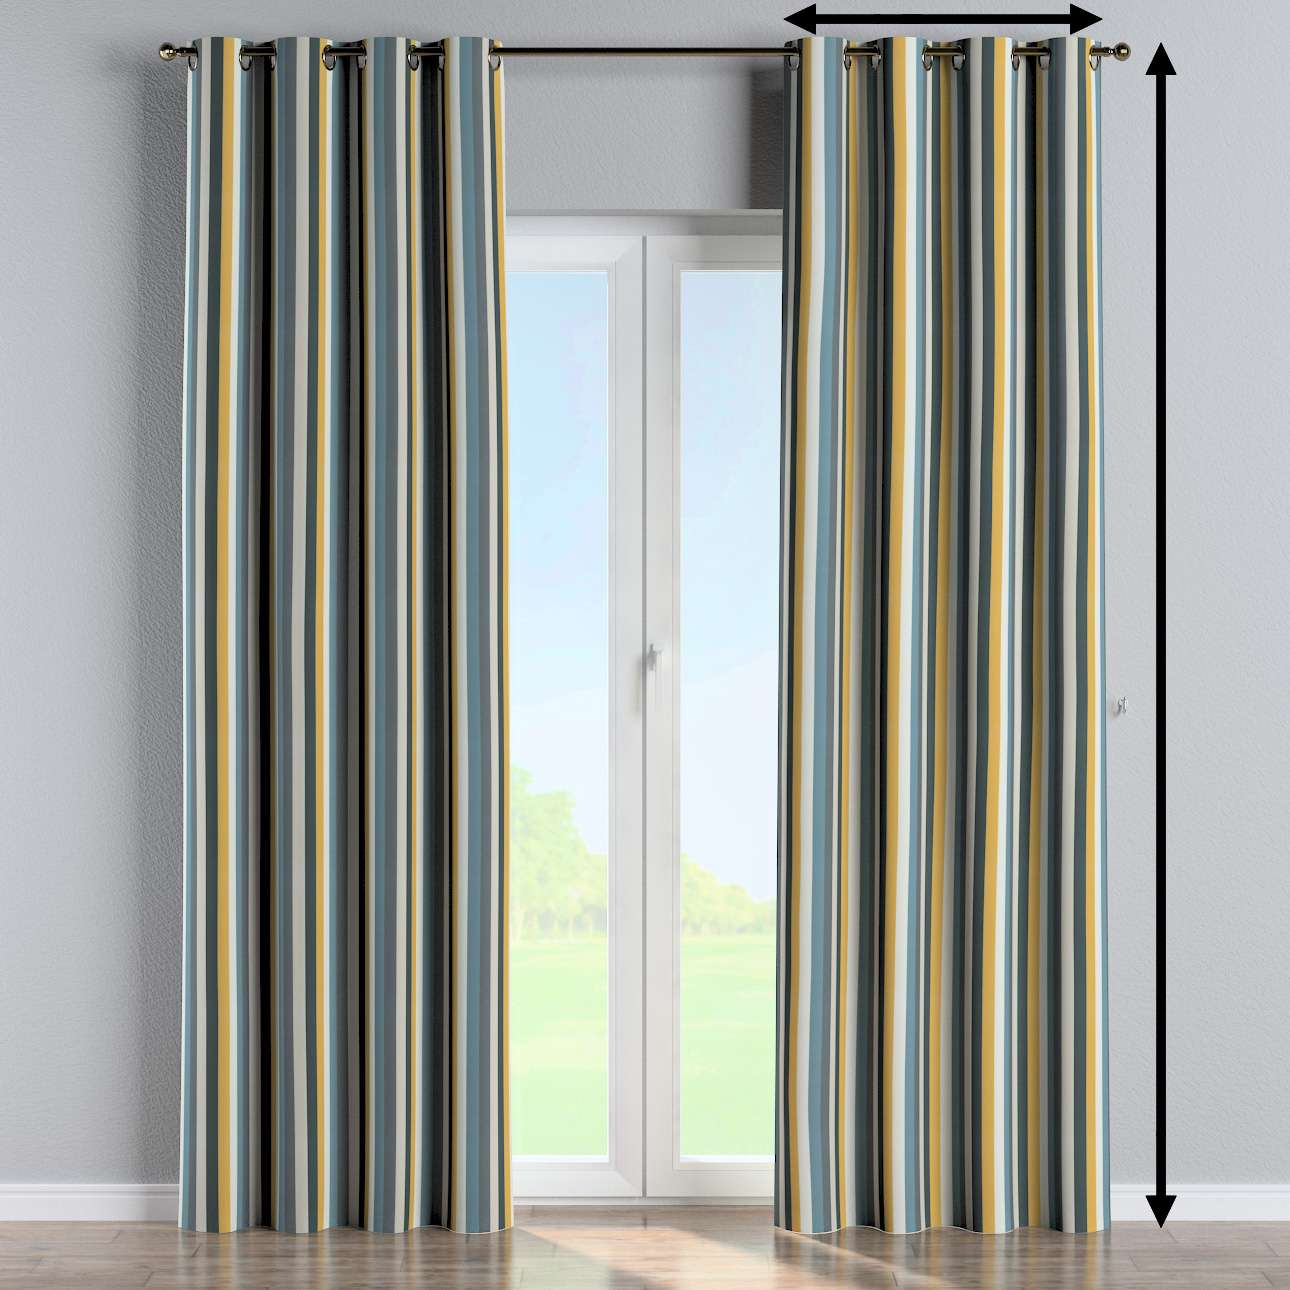 Eyelet curtain in collection Vintage 70's, fabric: 143-59